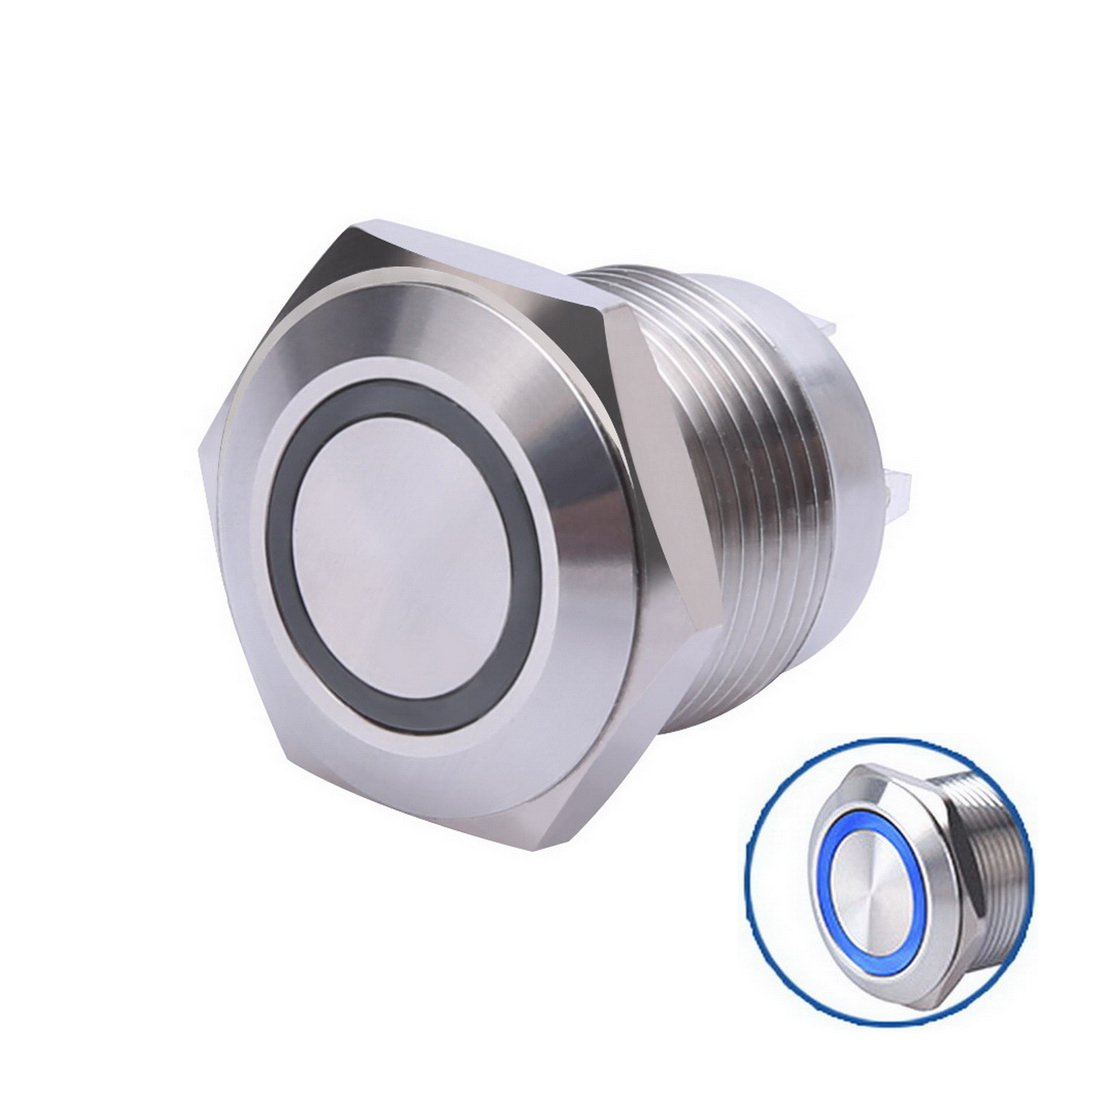 WerFamily 16mm Waterproof Momentary Stainless Steel Metal Push Button Switch Flat Top 250V 3A 1NO SPST